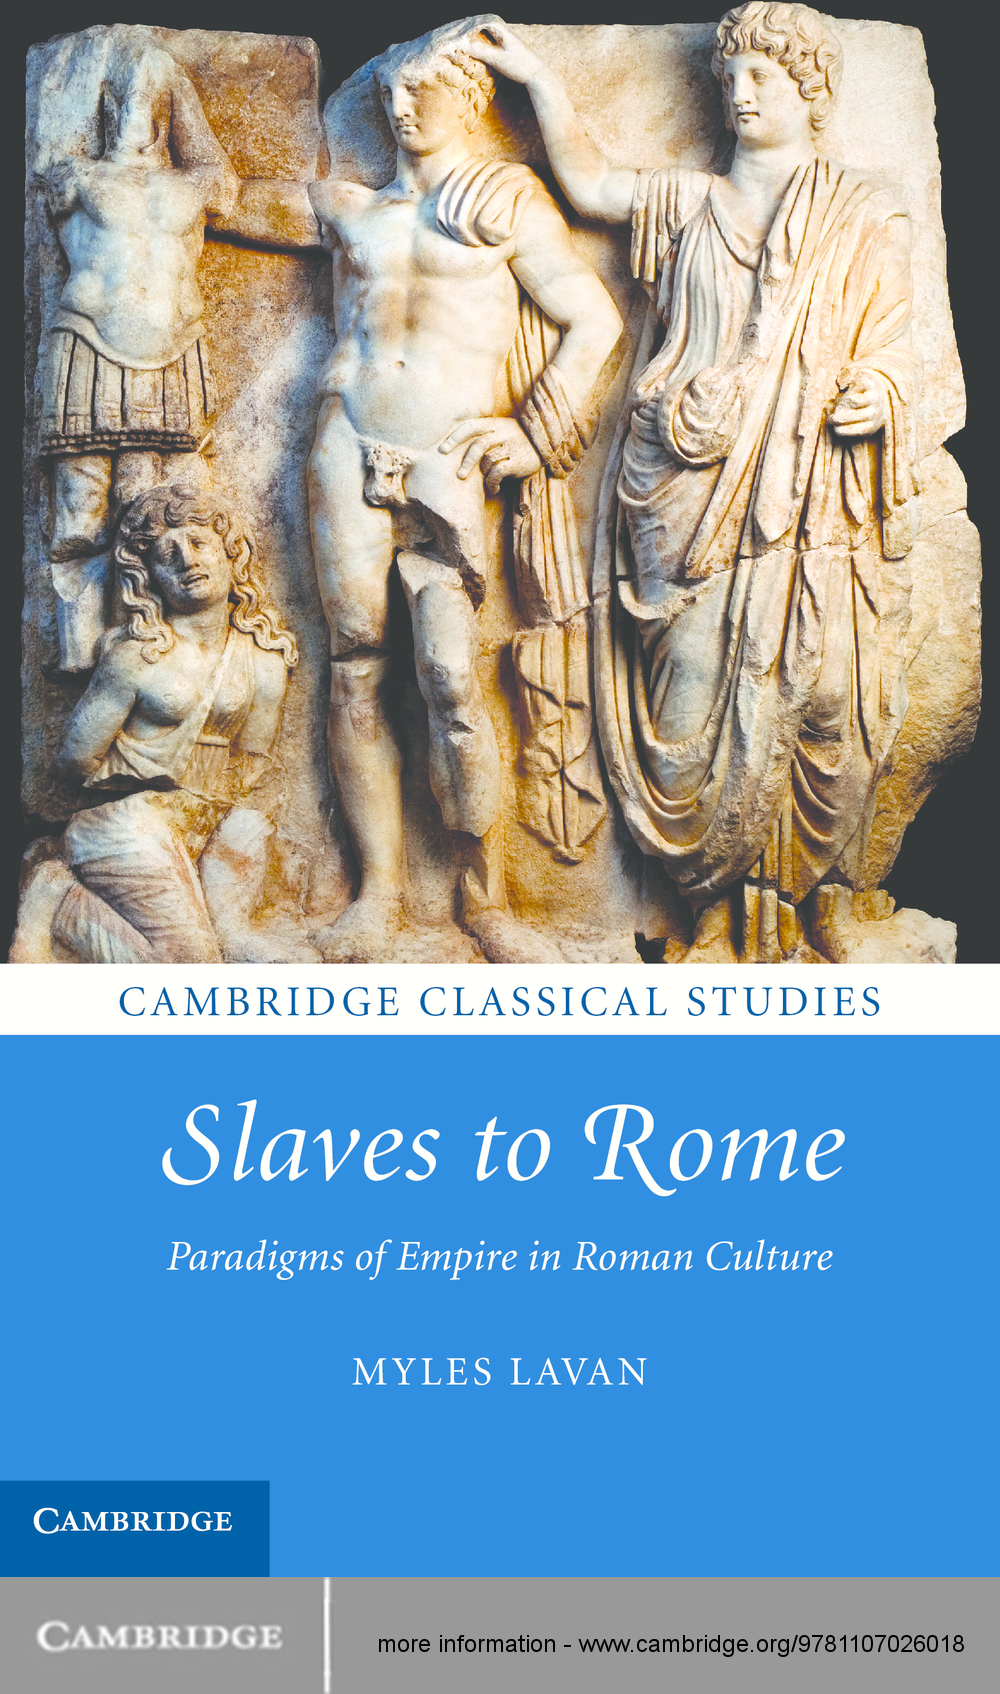 Slaves to Rome Paradigms of Empire in Roman Culture